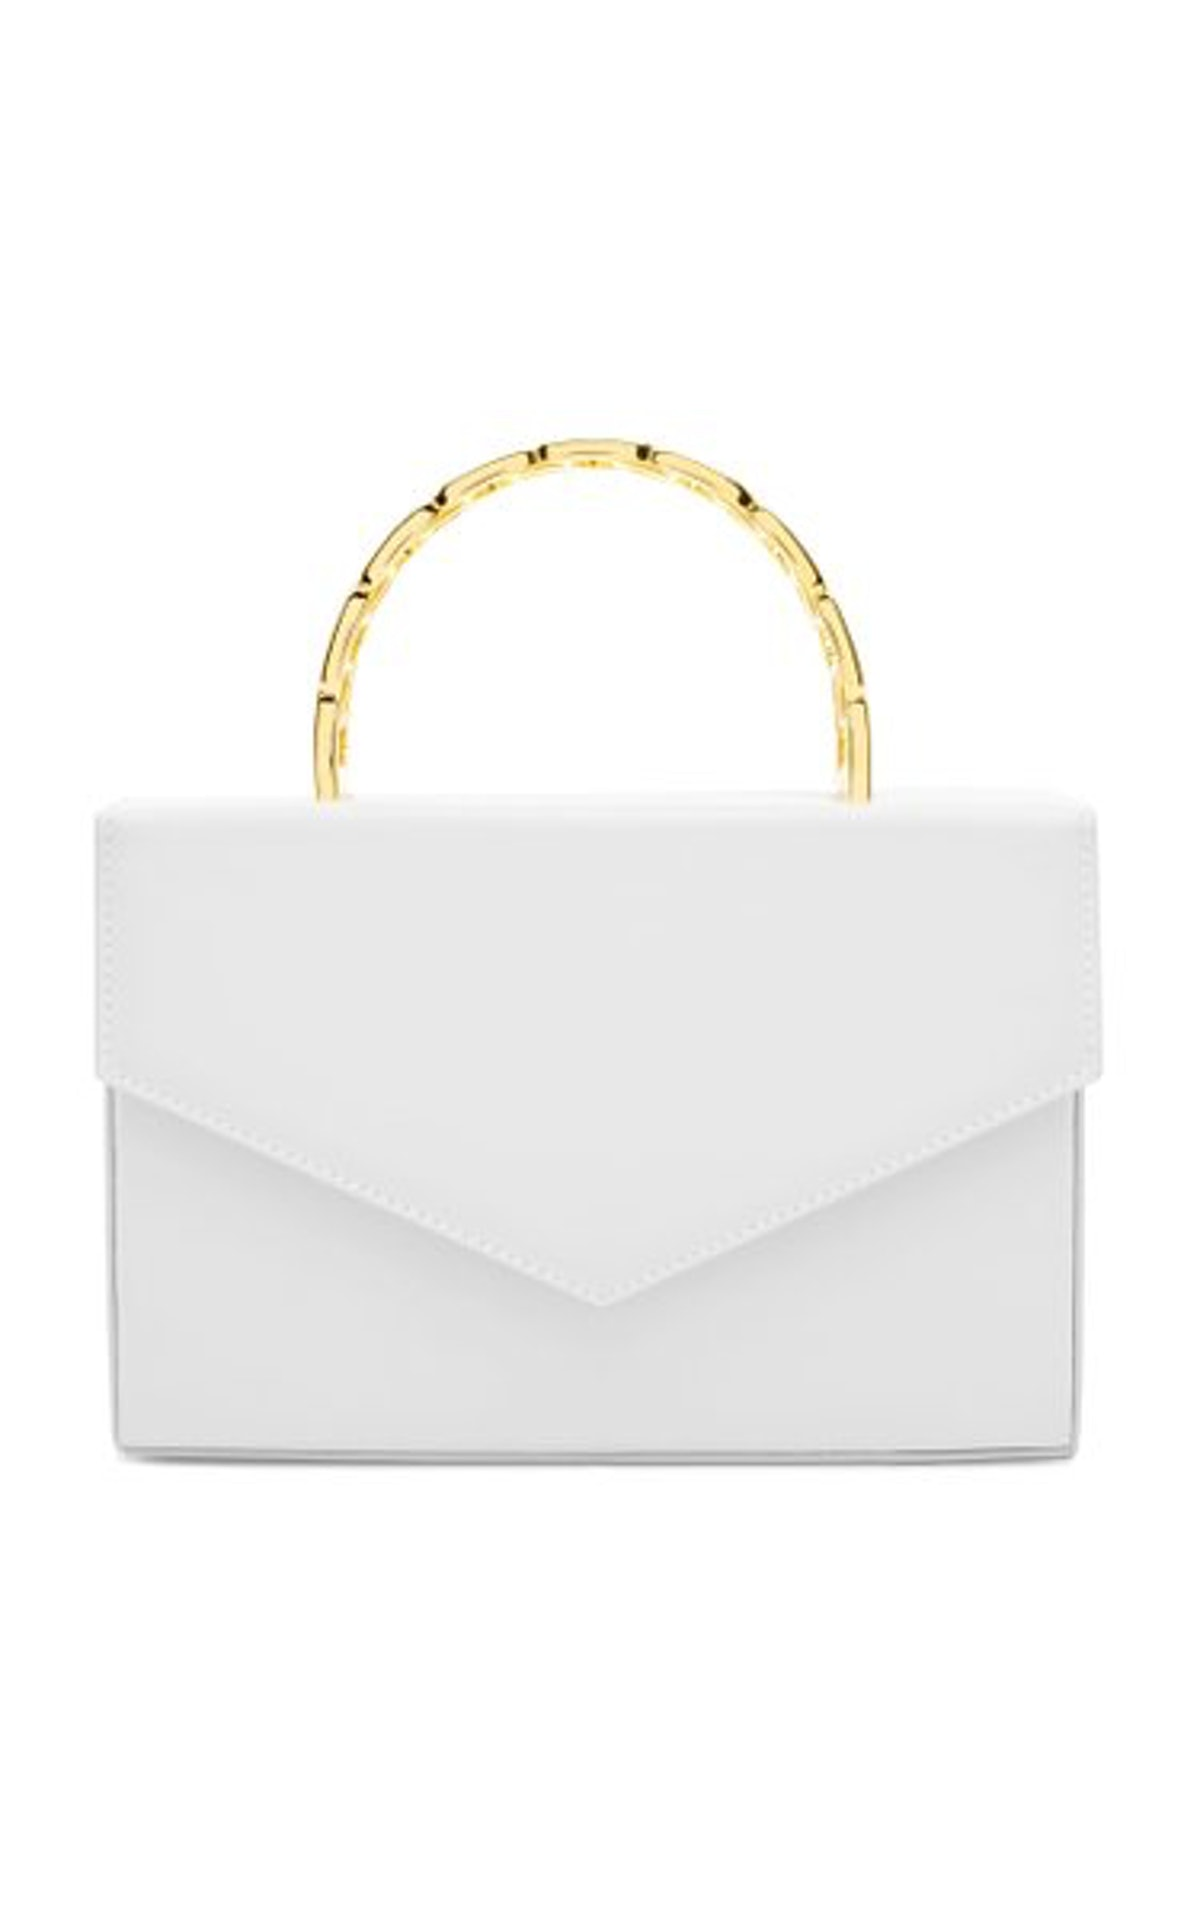 Pernille Leather Top Handle Bag